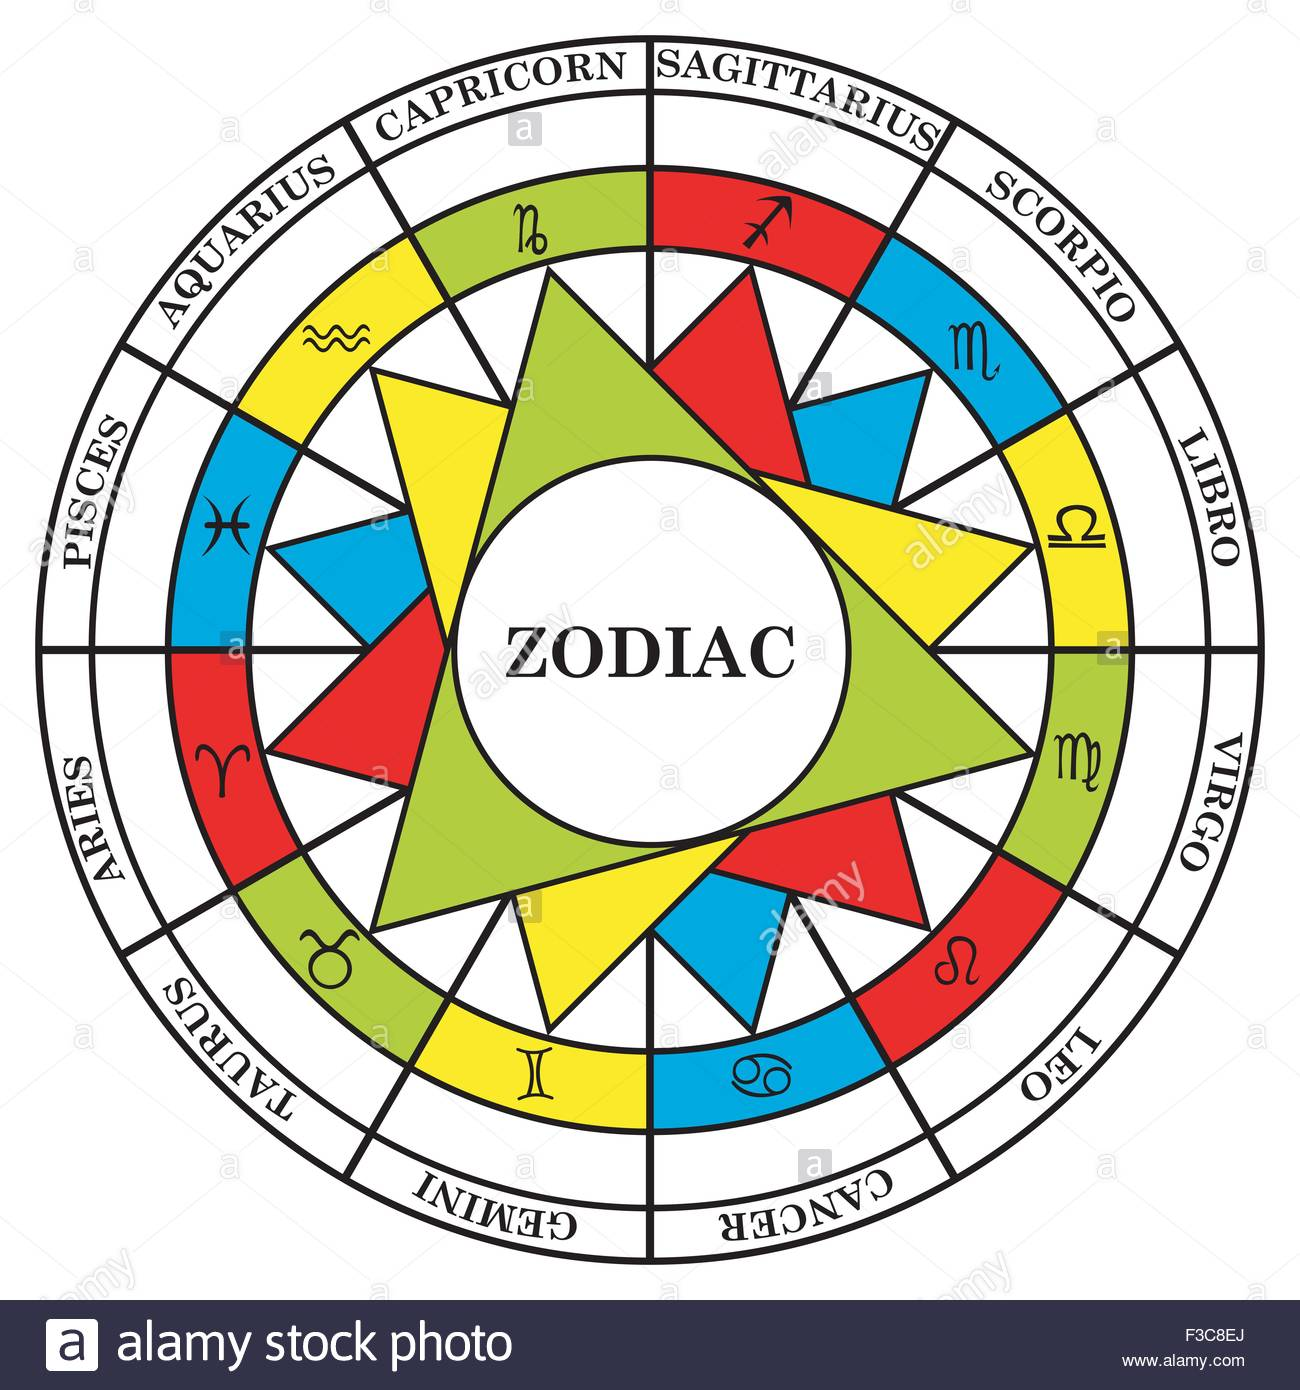 Astrology signs of the zodiac divided into elements fire, water, air